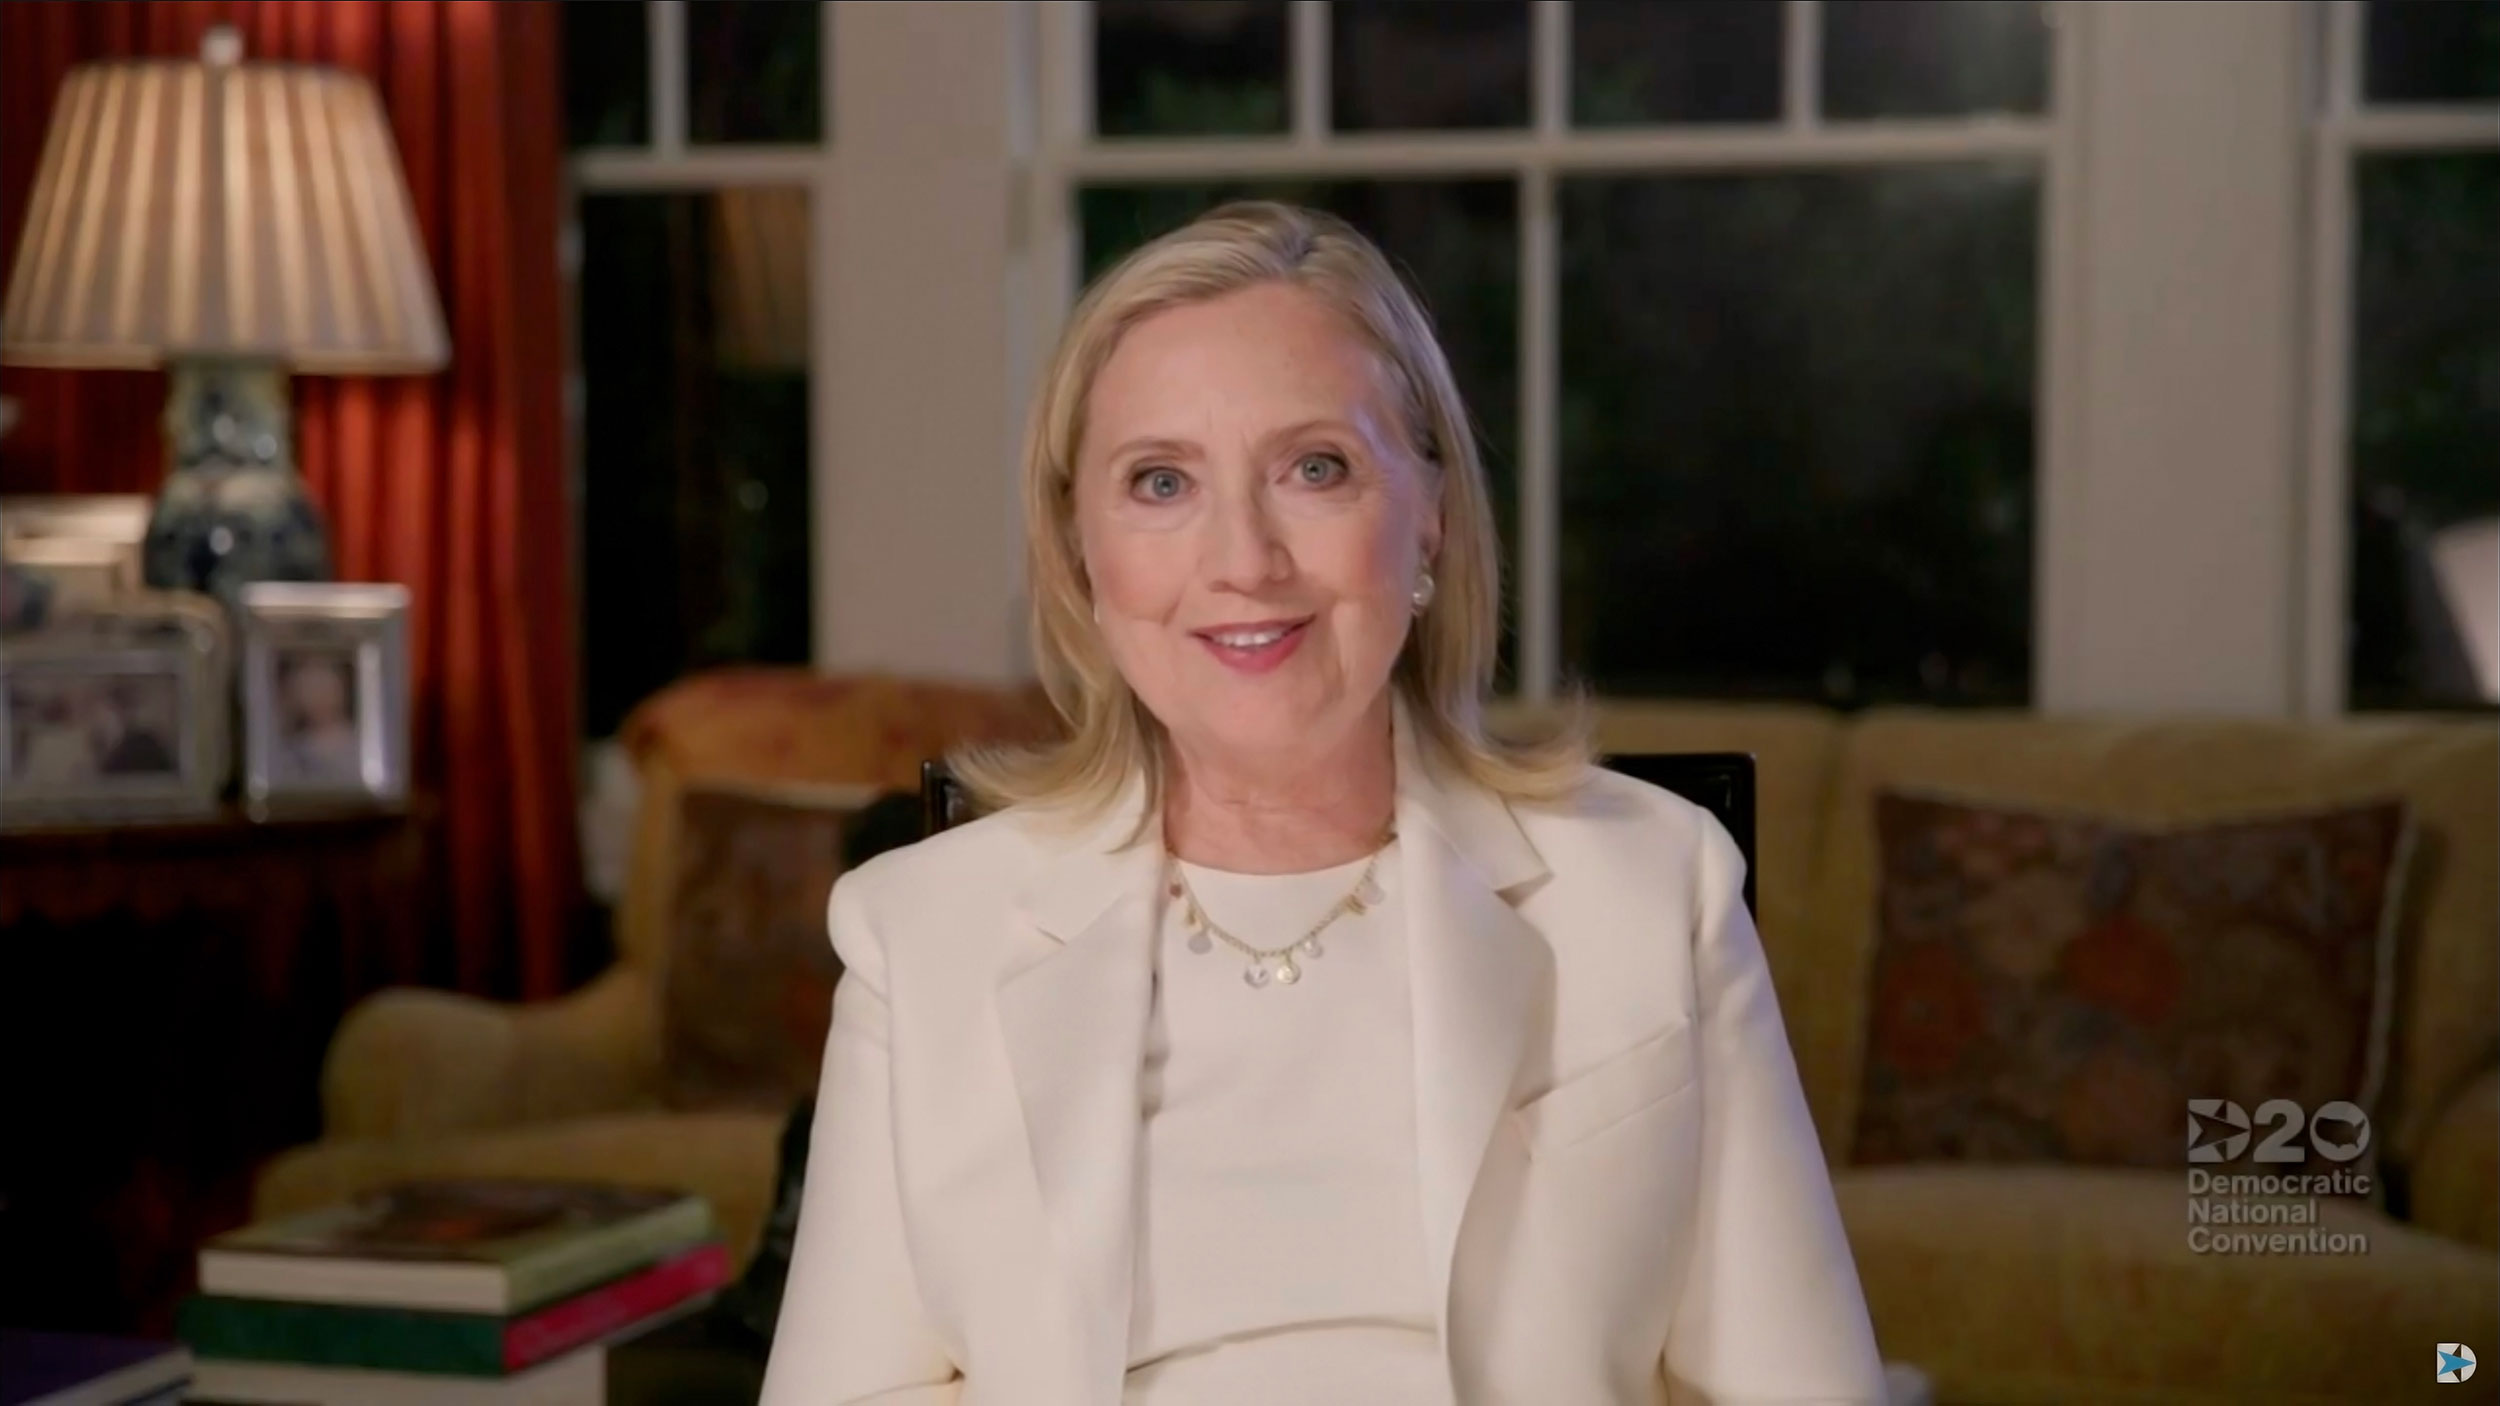 Hillary Clinton's new podcast to launch this month